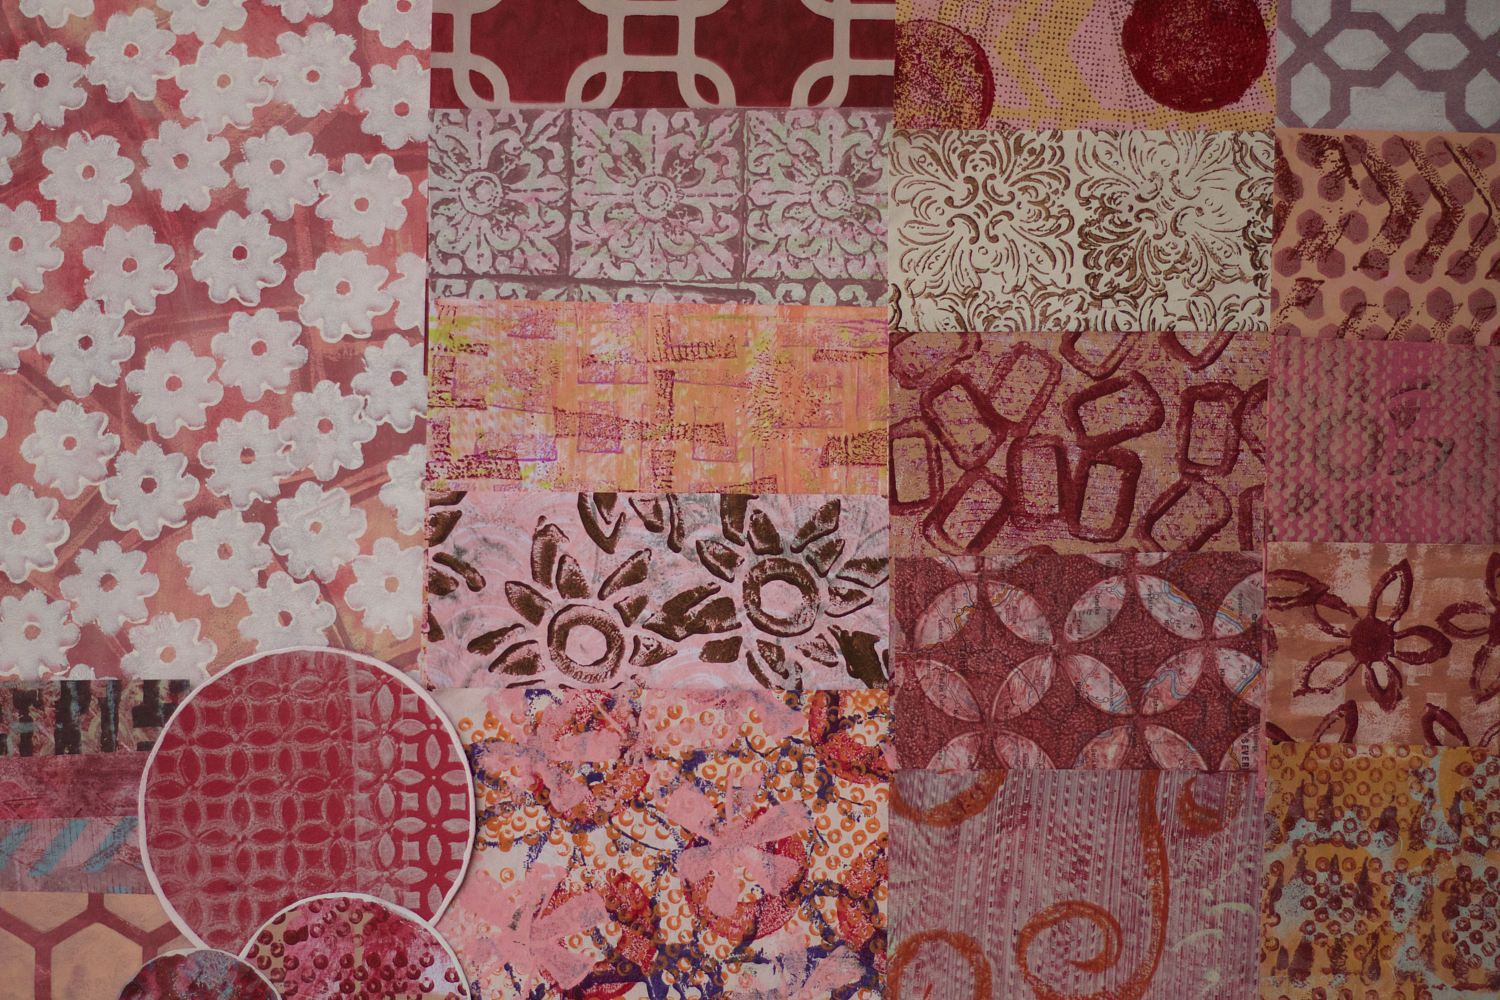 Assorted Handmade Gelli Plate Papers for use in Collages, Art Journals, Mixed Media Art, Scrapbooks, Smash Books, Cards, and more! #94 by KrisCollageMadness on Etsy